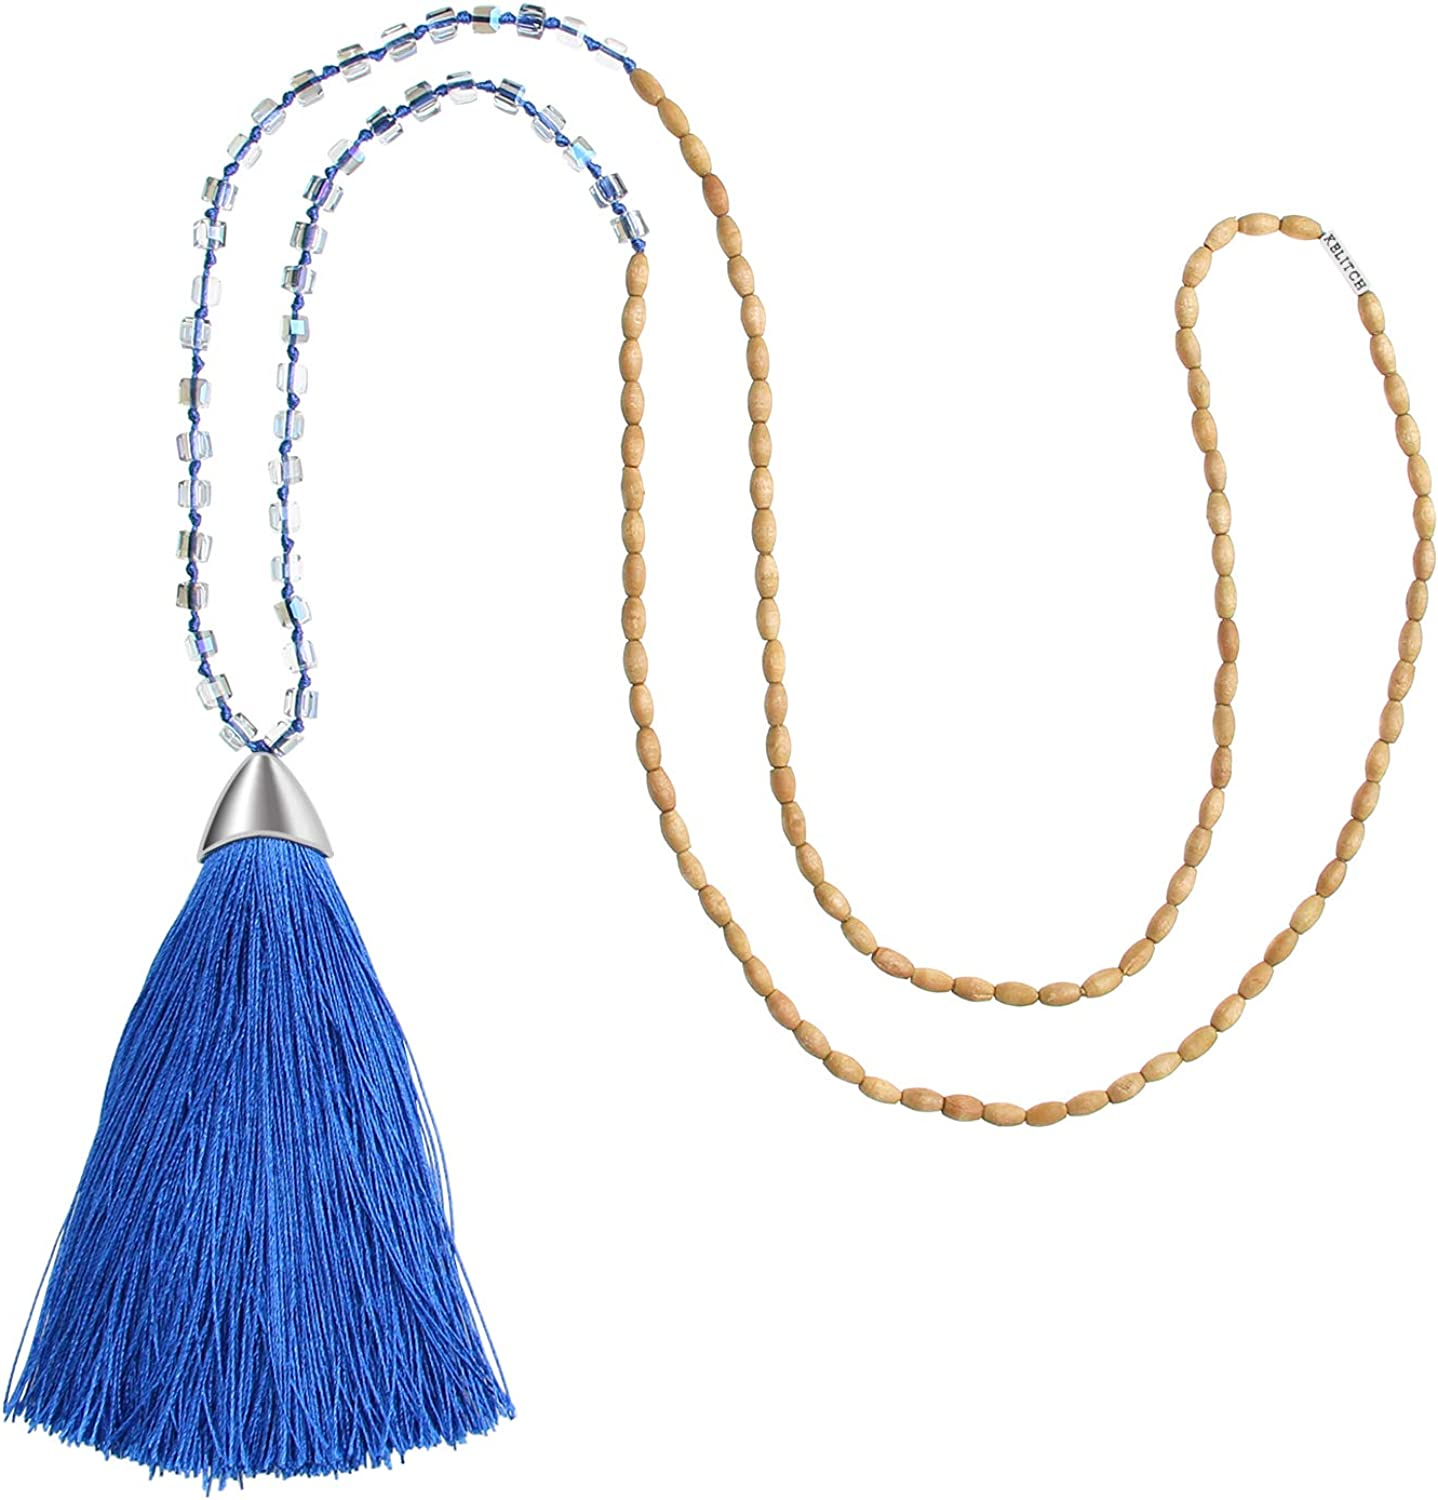 KELITCH Long Tassel Necklace Handmade Wooden Crystal Beads Pendant Strand Necklace for Women Gifts New Jewelry